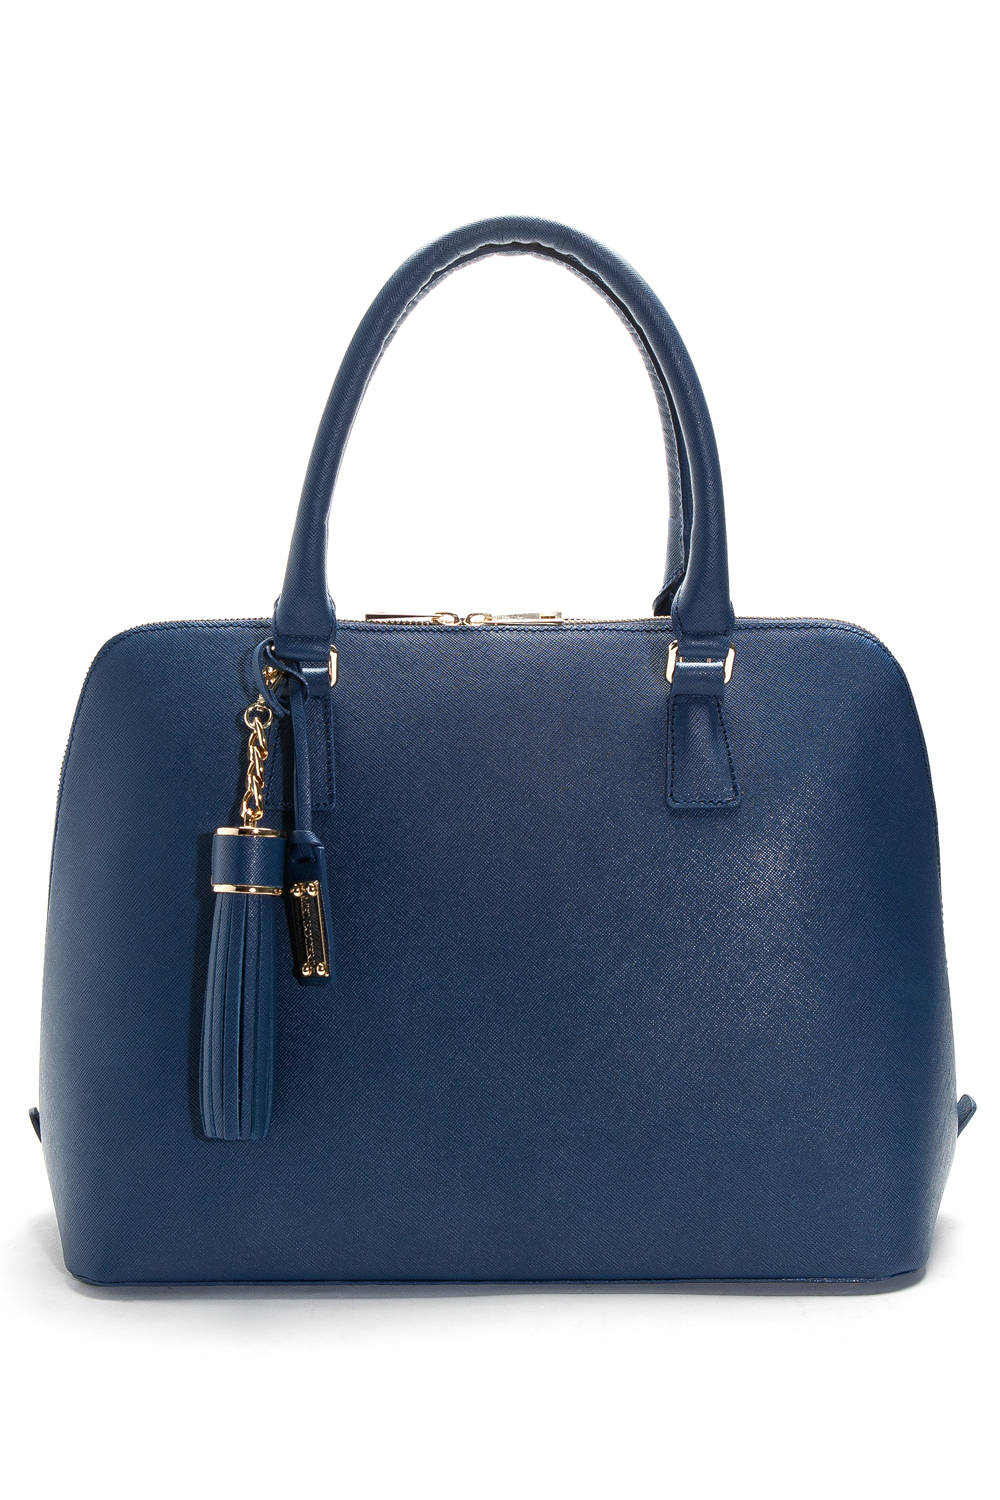 Mel Boteri | Blue Saffiano Leather 'Watson' Tote | Front